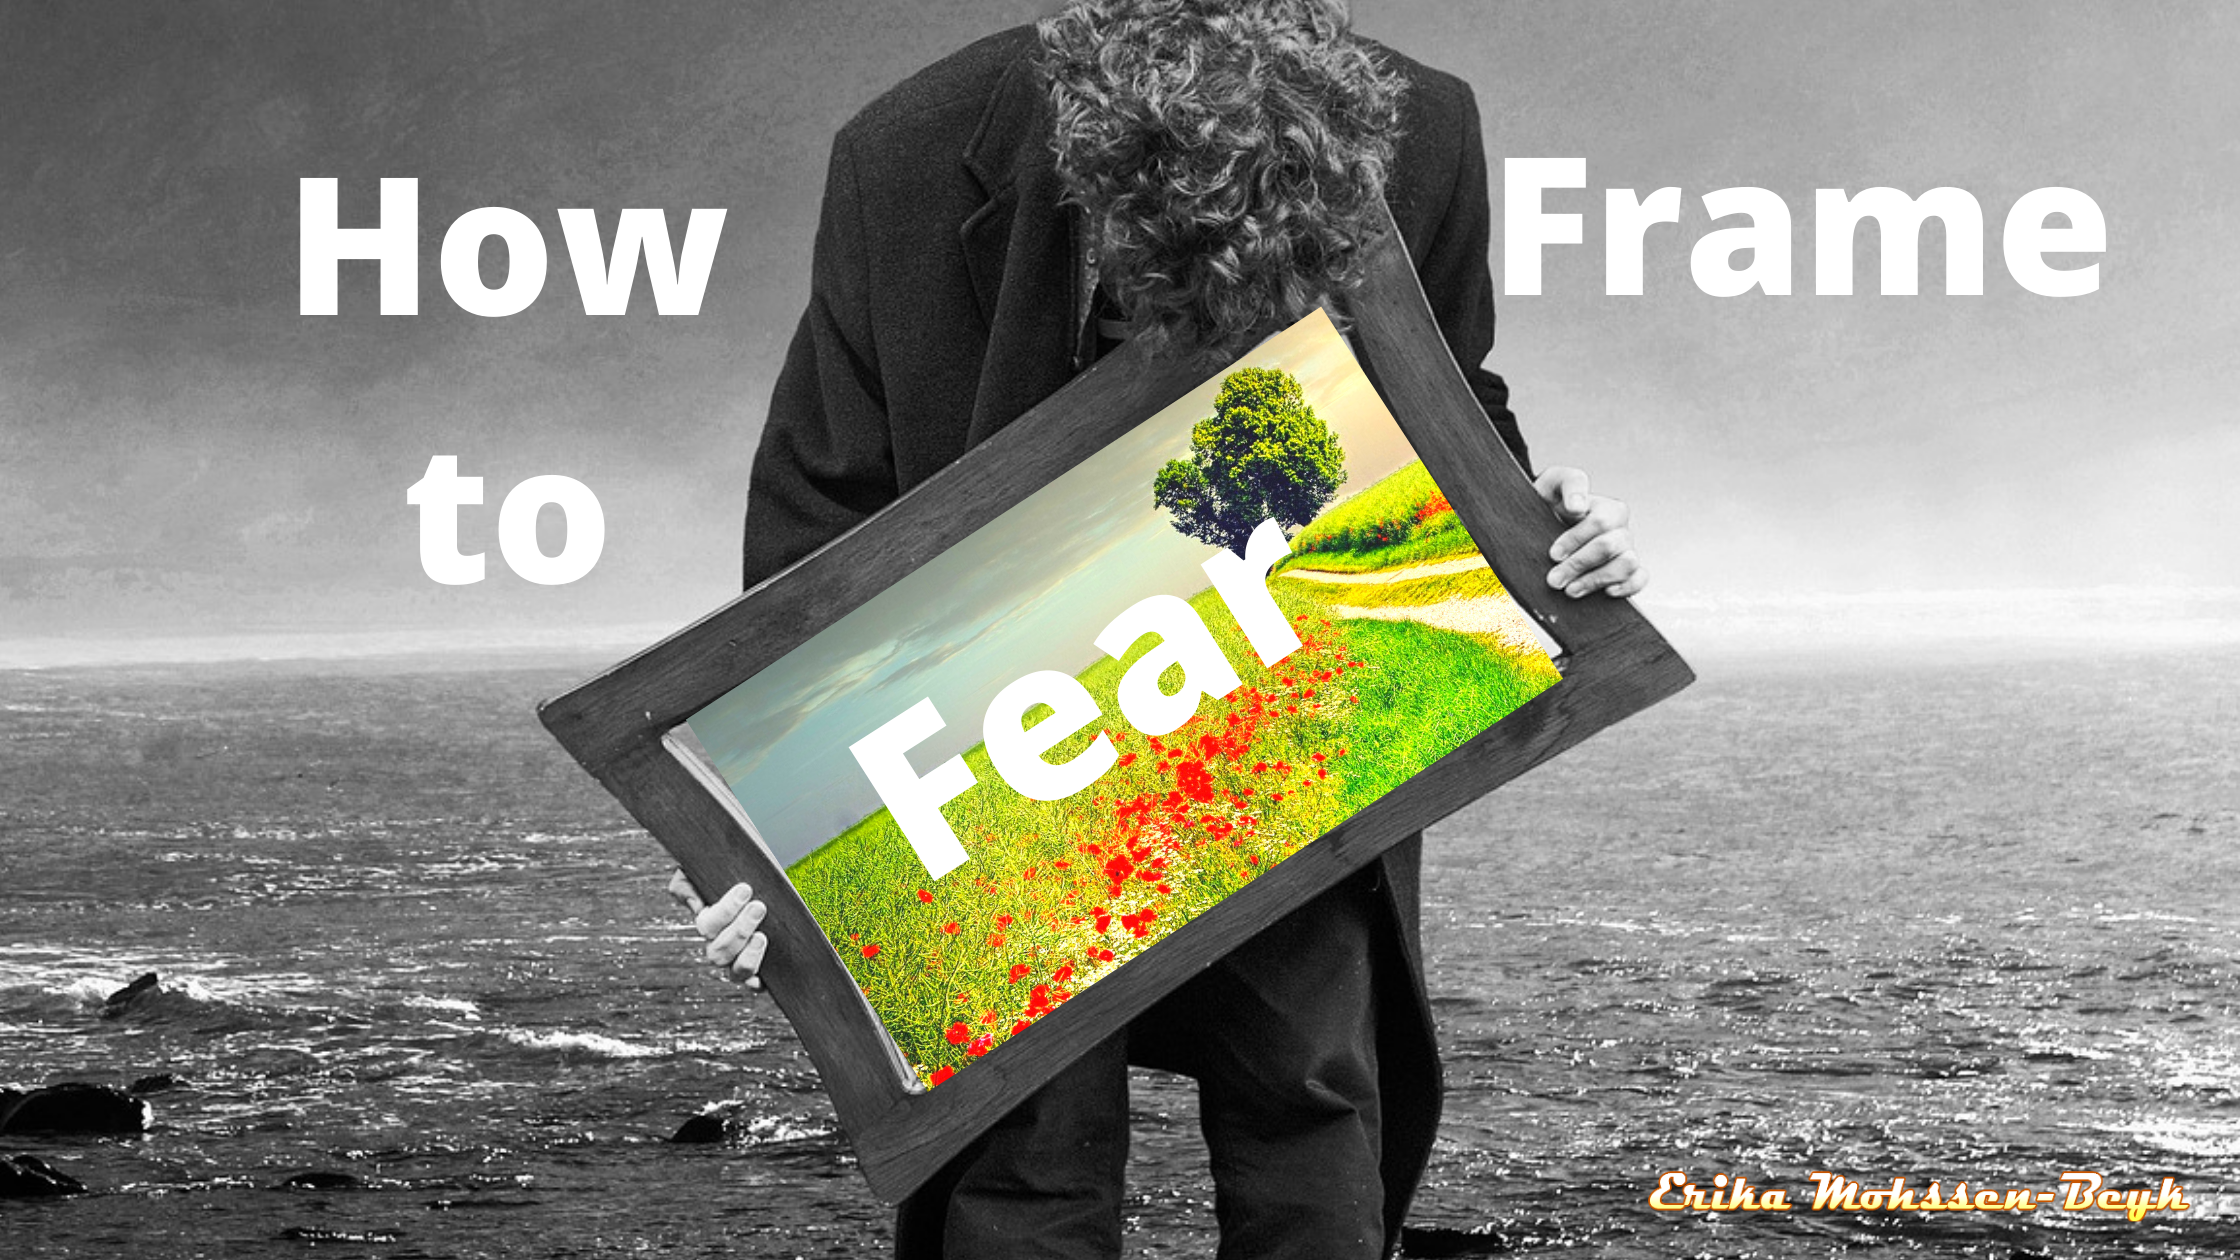 How to frame fear